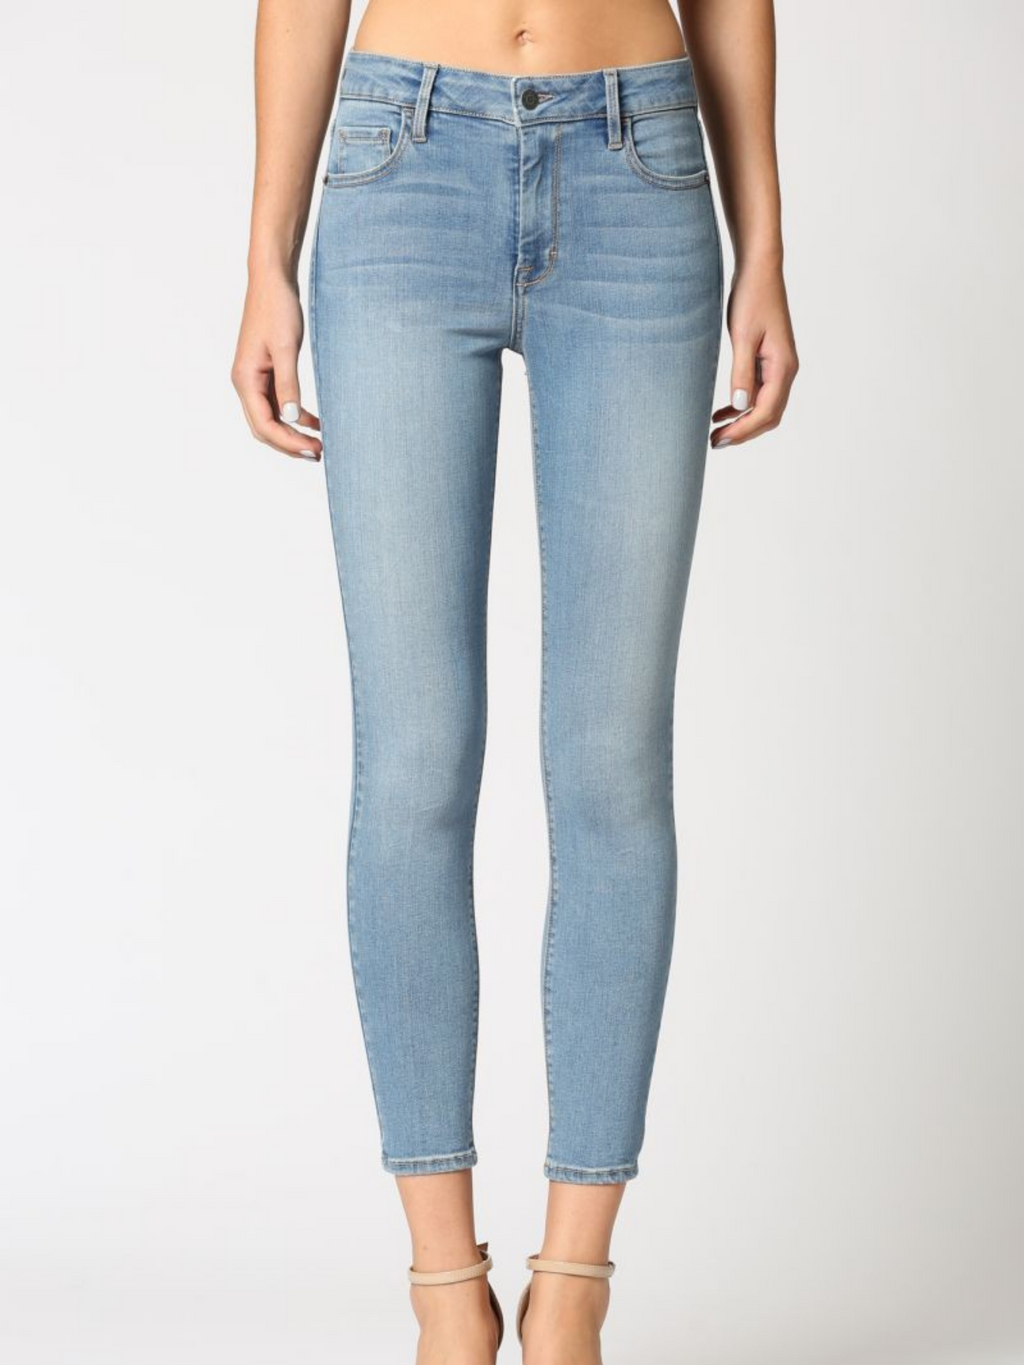 Light Wash Classic Stretch Denim